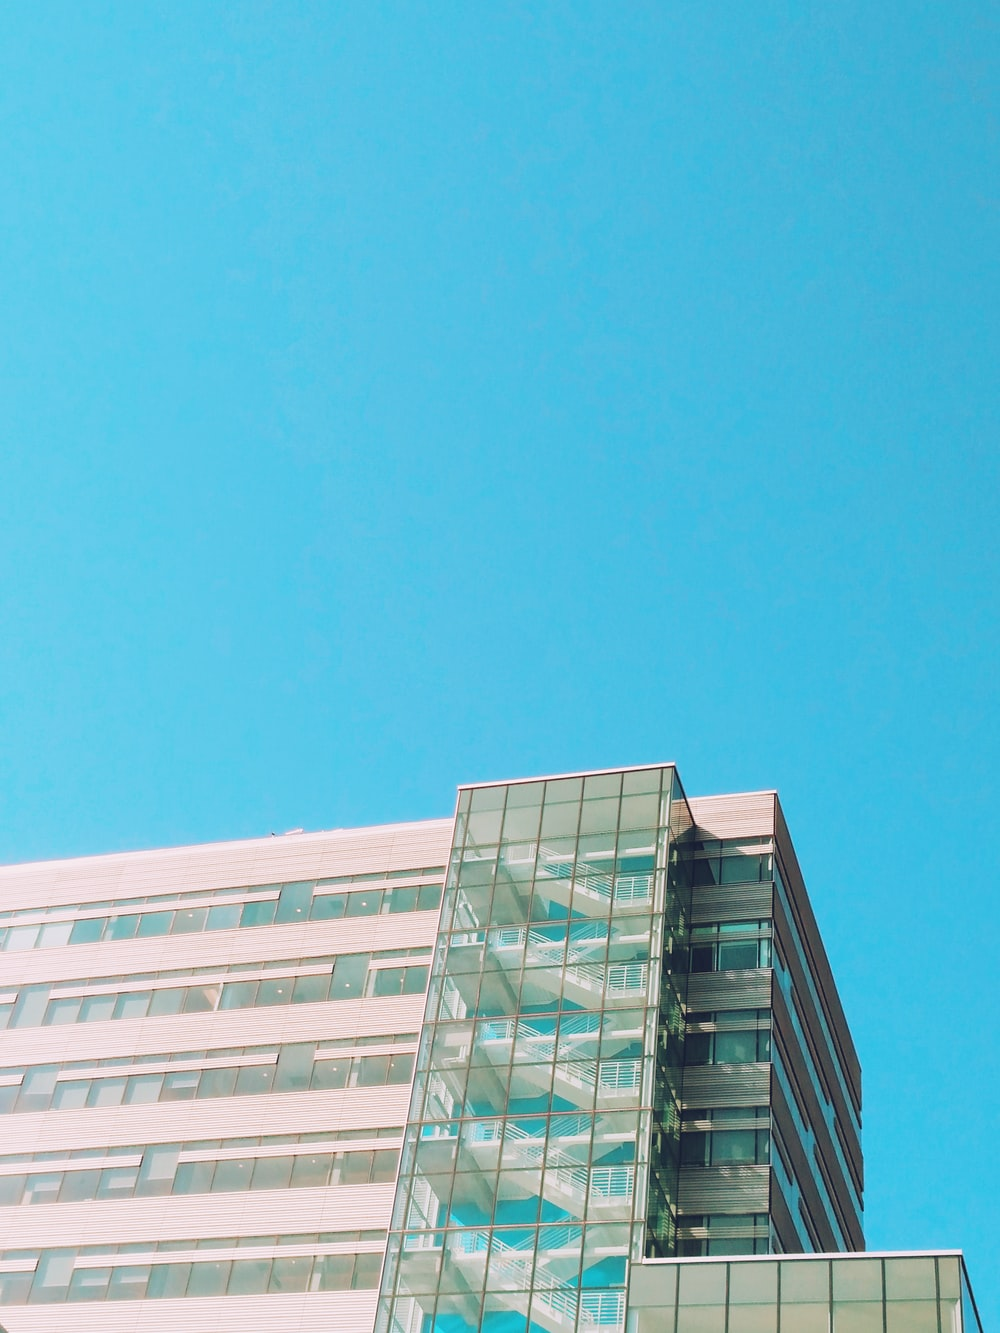 worm's-eye view photography of white building